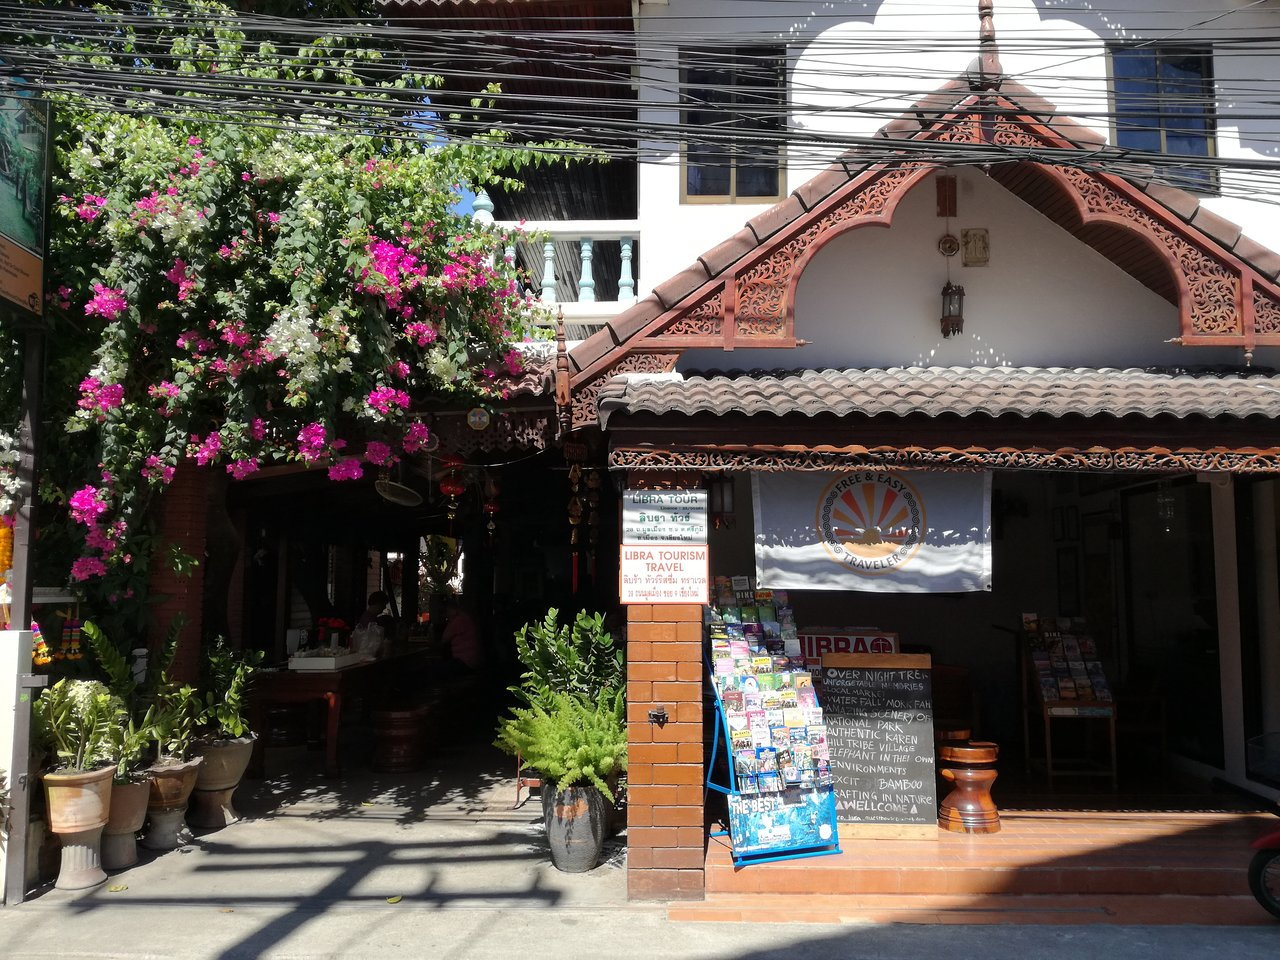 LIBRA GUEST HOUSE - Updated 2019 Prices & Reviews (Chiang